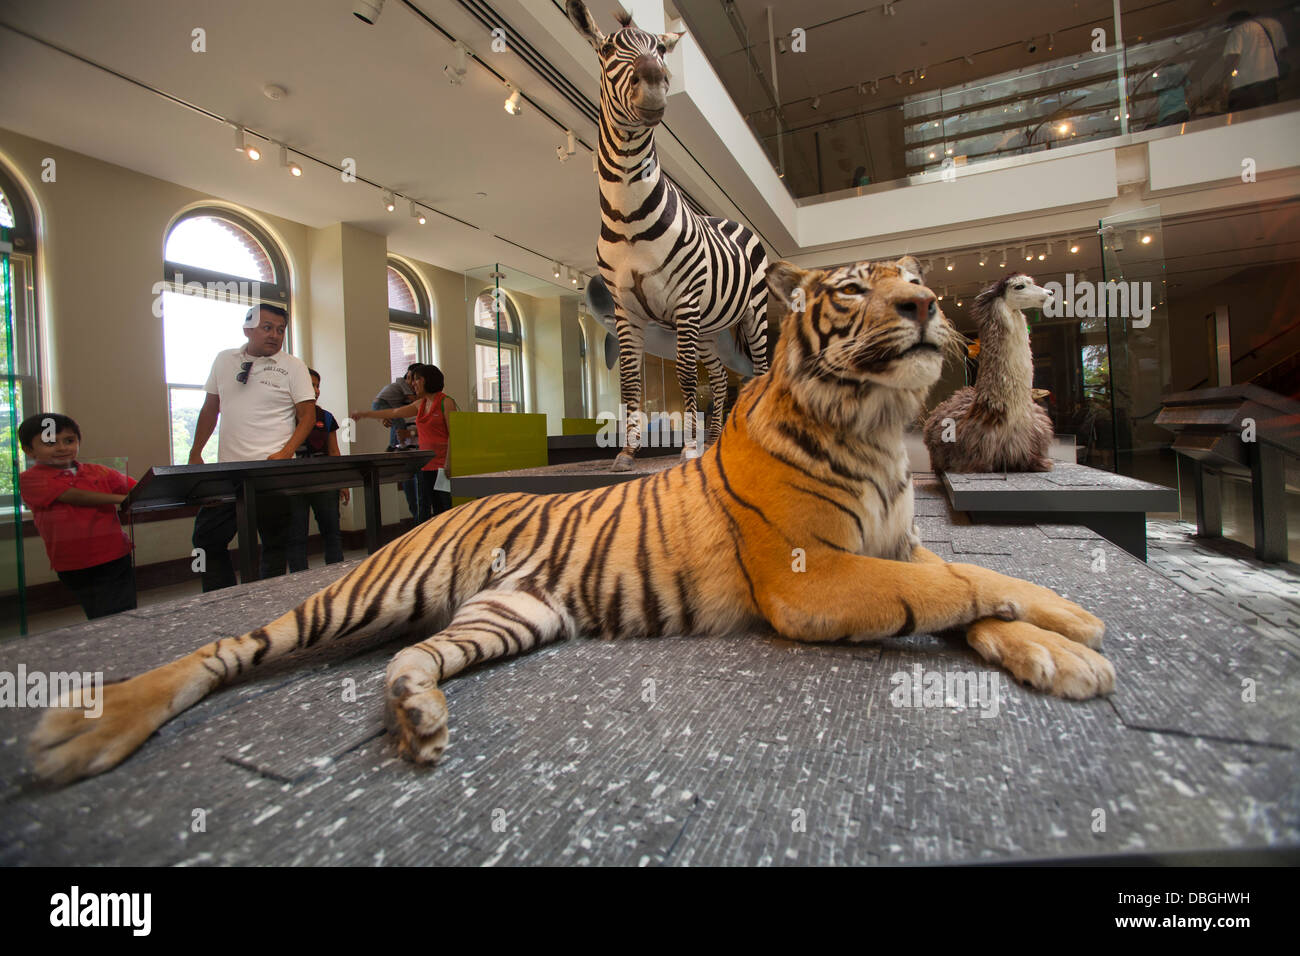 Museum of Natural History, Los Angeles, California, United States of America - Stock Image